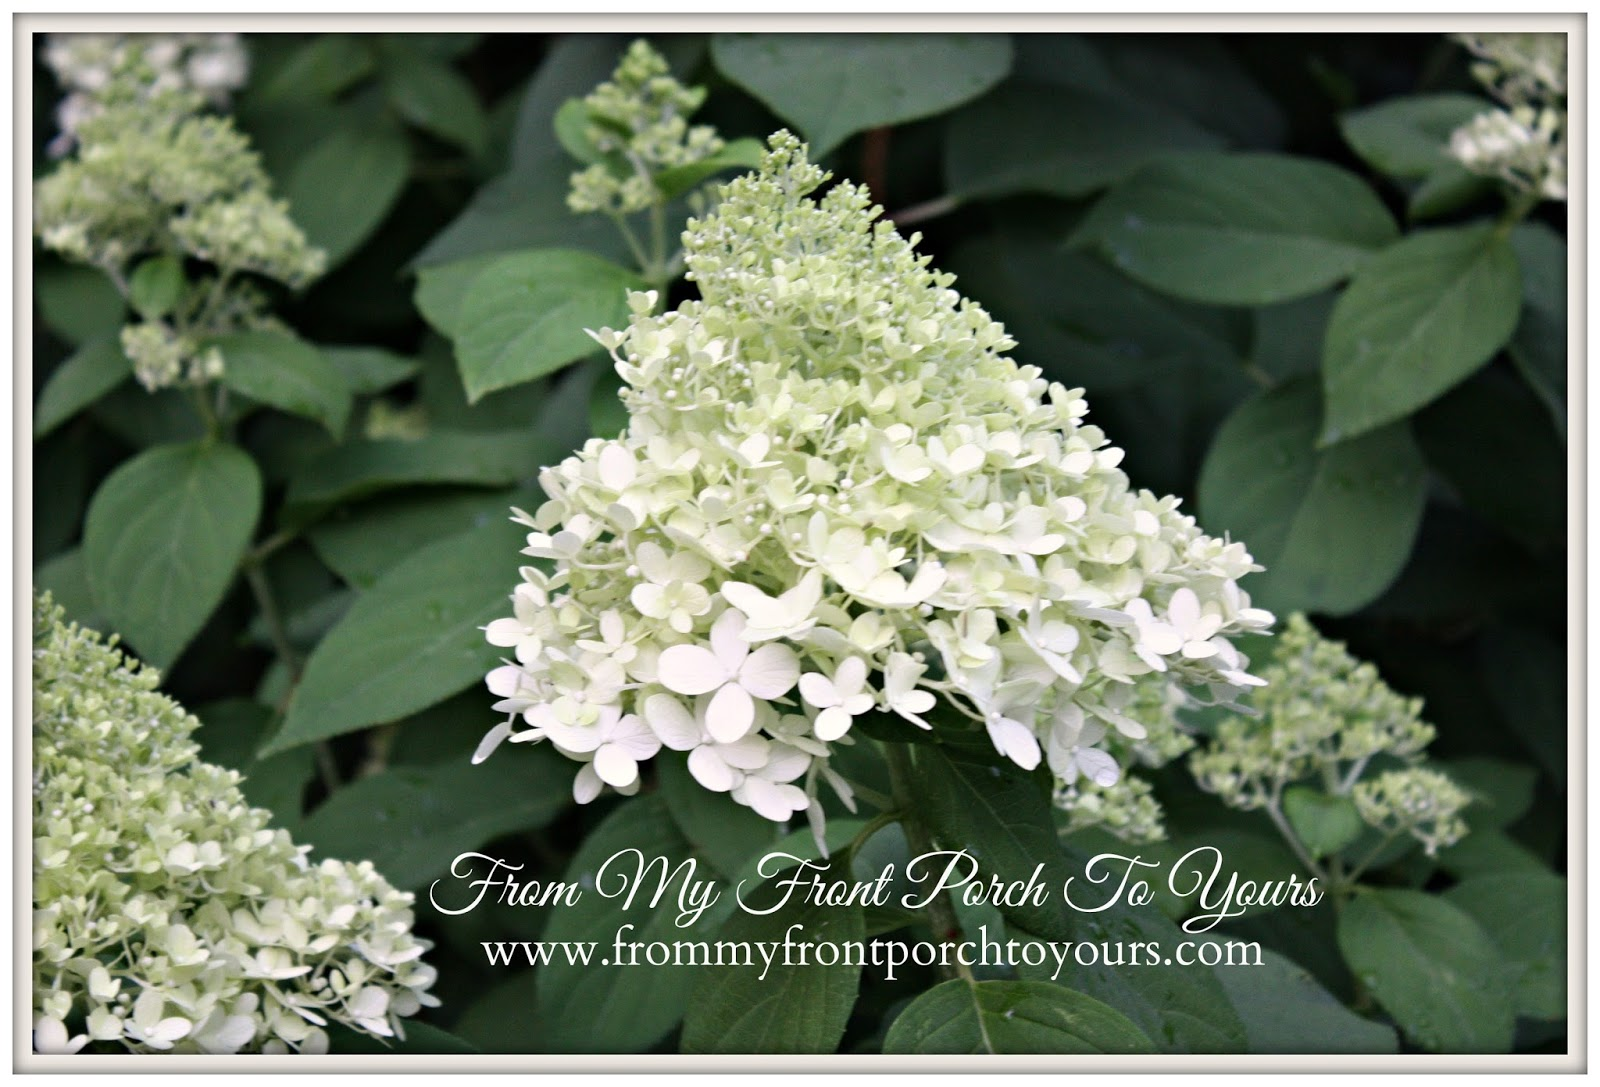 From My Front Porch To Yours- Flower Garden Hydrangea